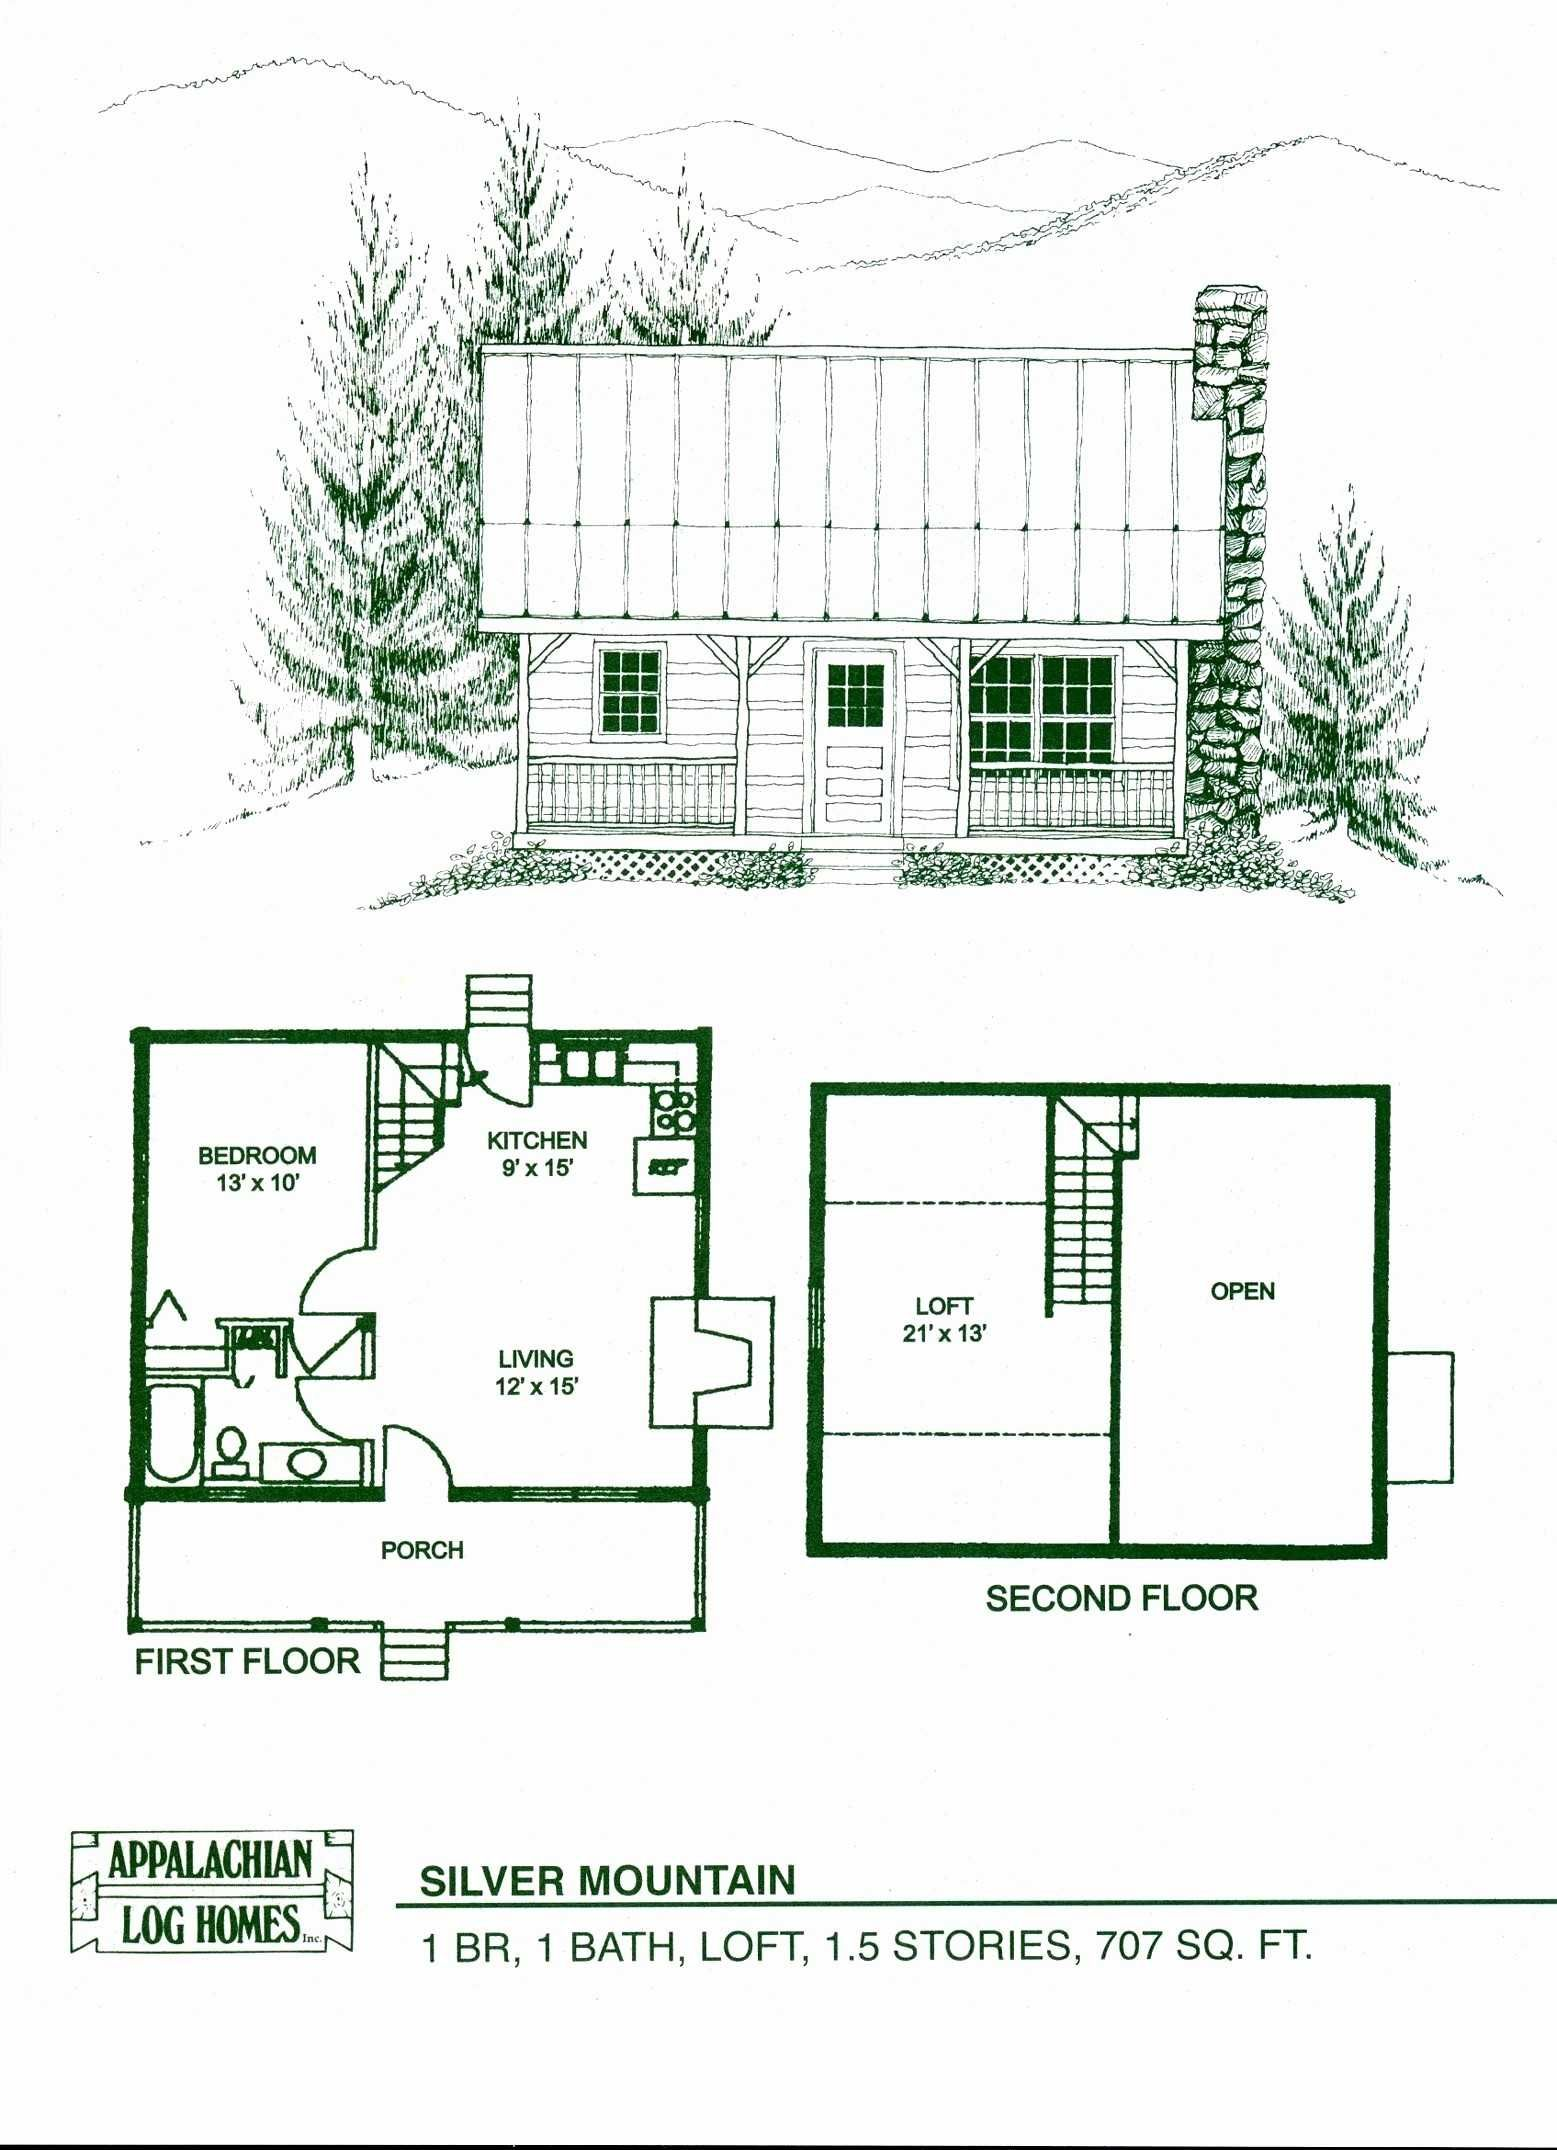 Traditional Japanese House Plans With Courtyard Lovely Traditional Japanese House Plans With C House Plan With Loft Log Cabin Floor Plans Cottage Floor Plans